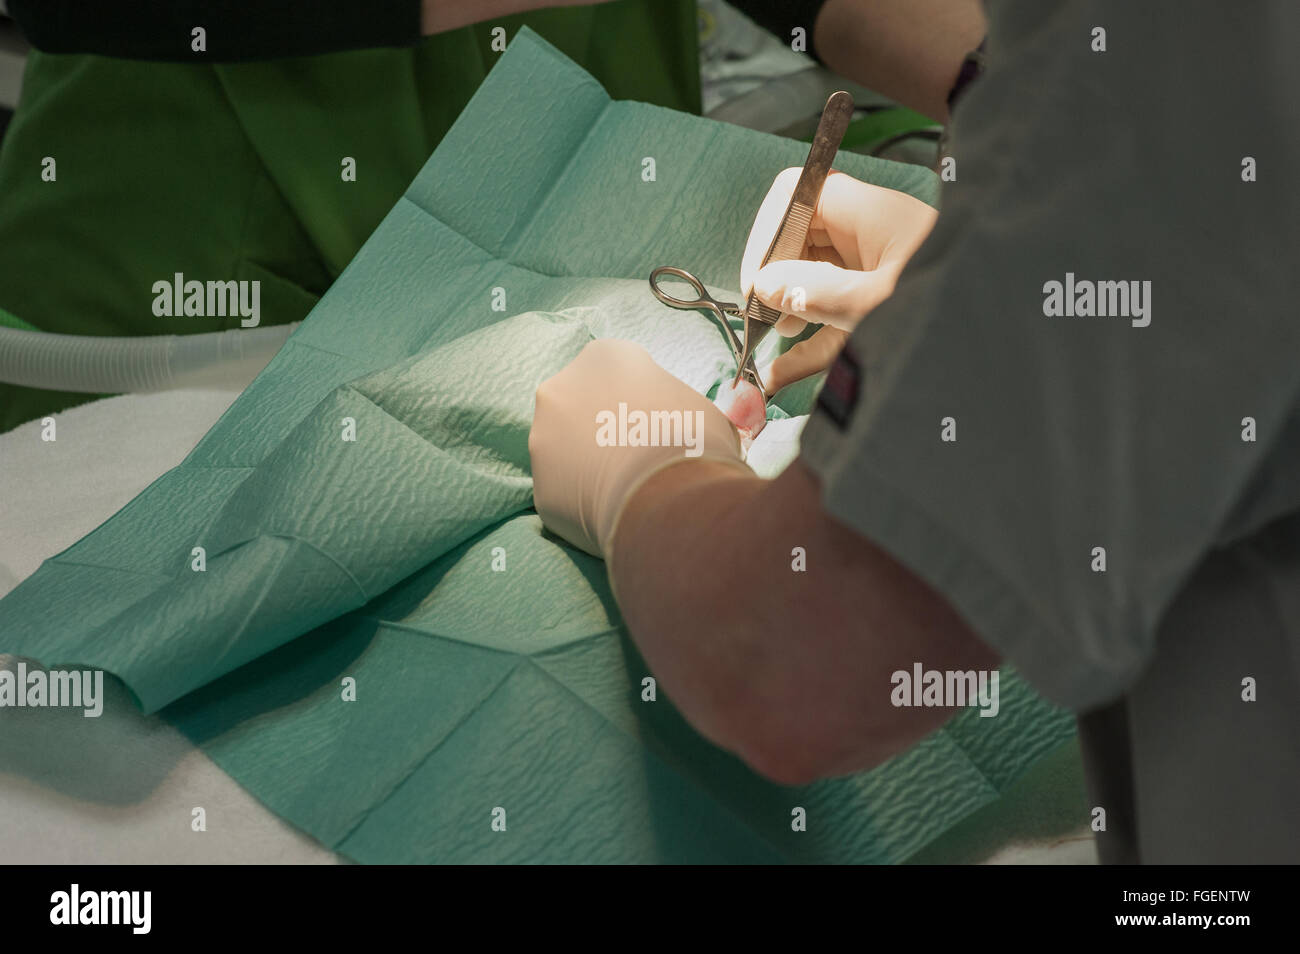 Rabbit undergoing Castration Surgery - Stock Image